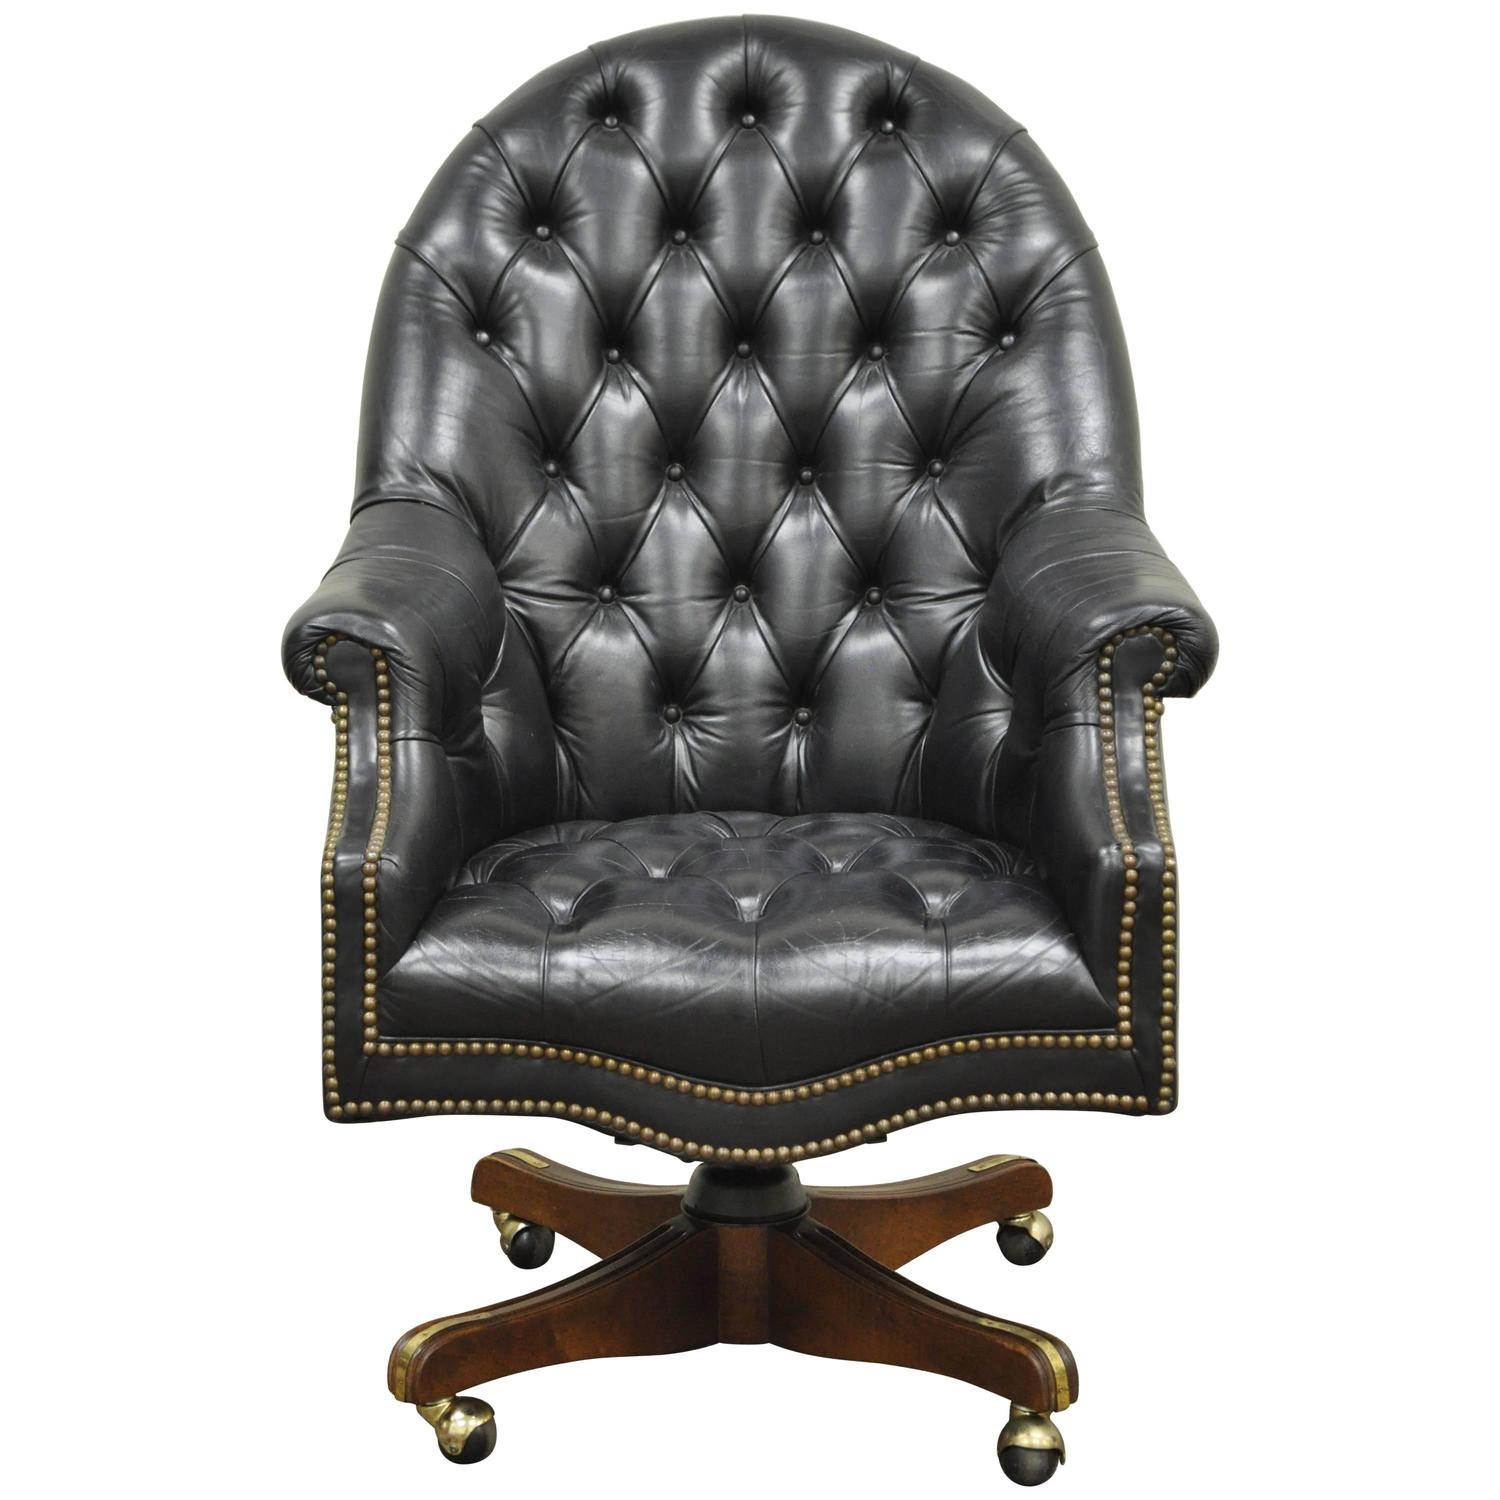 vintage office chairs for sale. vintage deep tufted black leather english chesterfield style office desk chair for sale at 1stdibs chairs